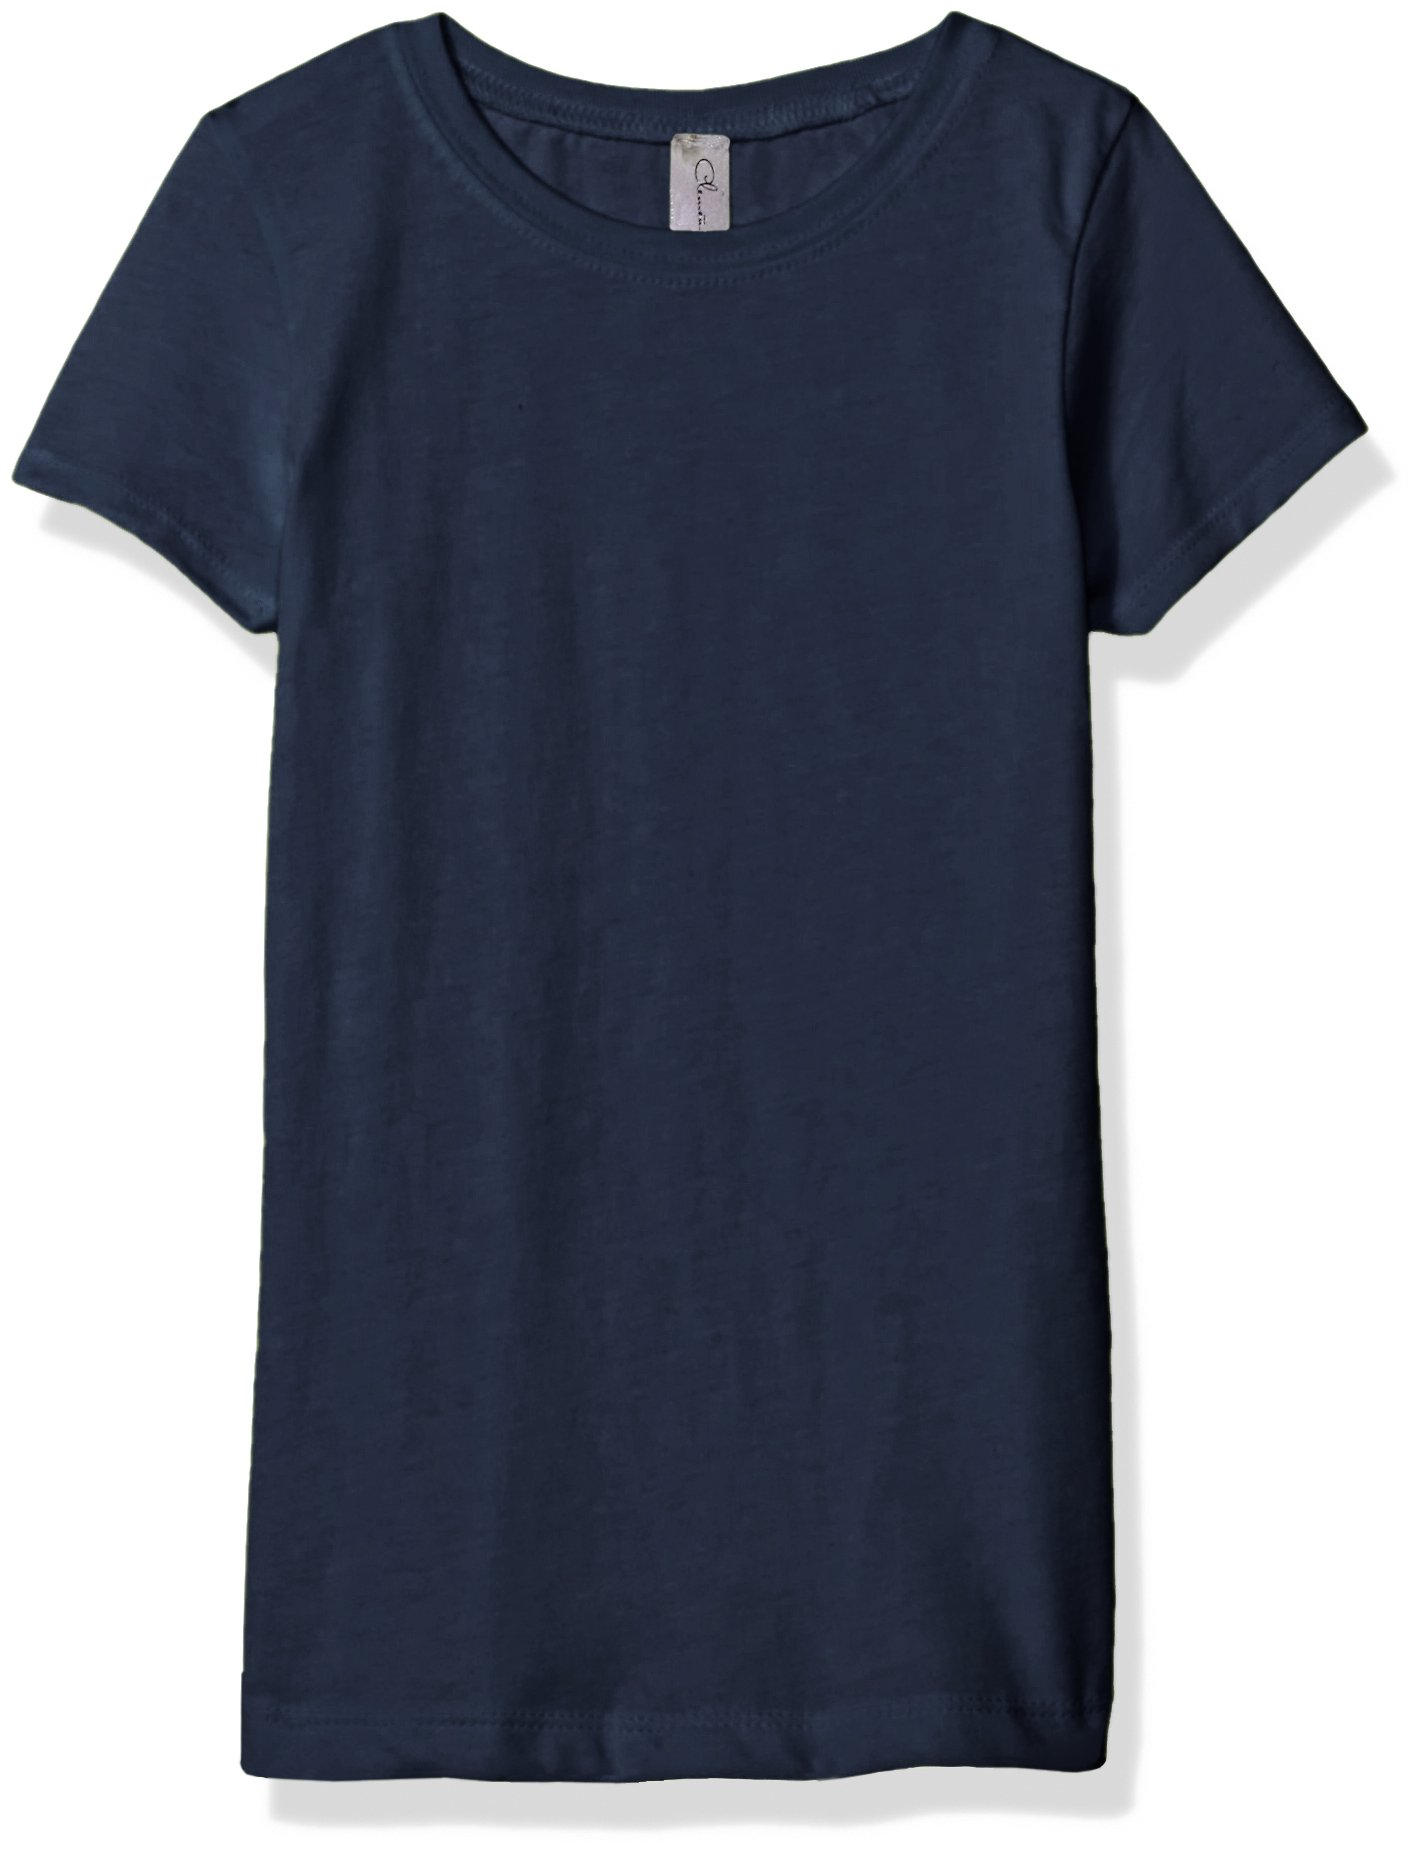 Clementine Girls' T Crew Neck 100% Soft Cotton Short Shirts Tees Assorted Colors